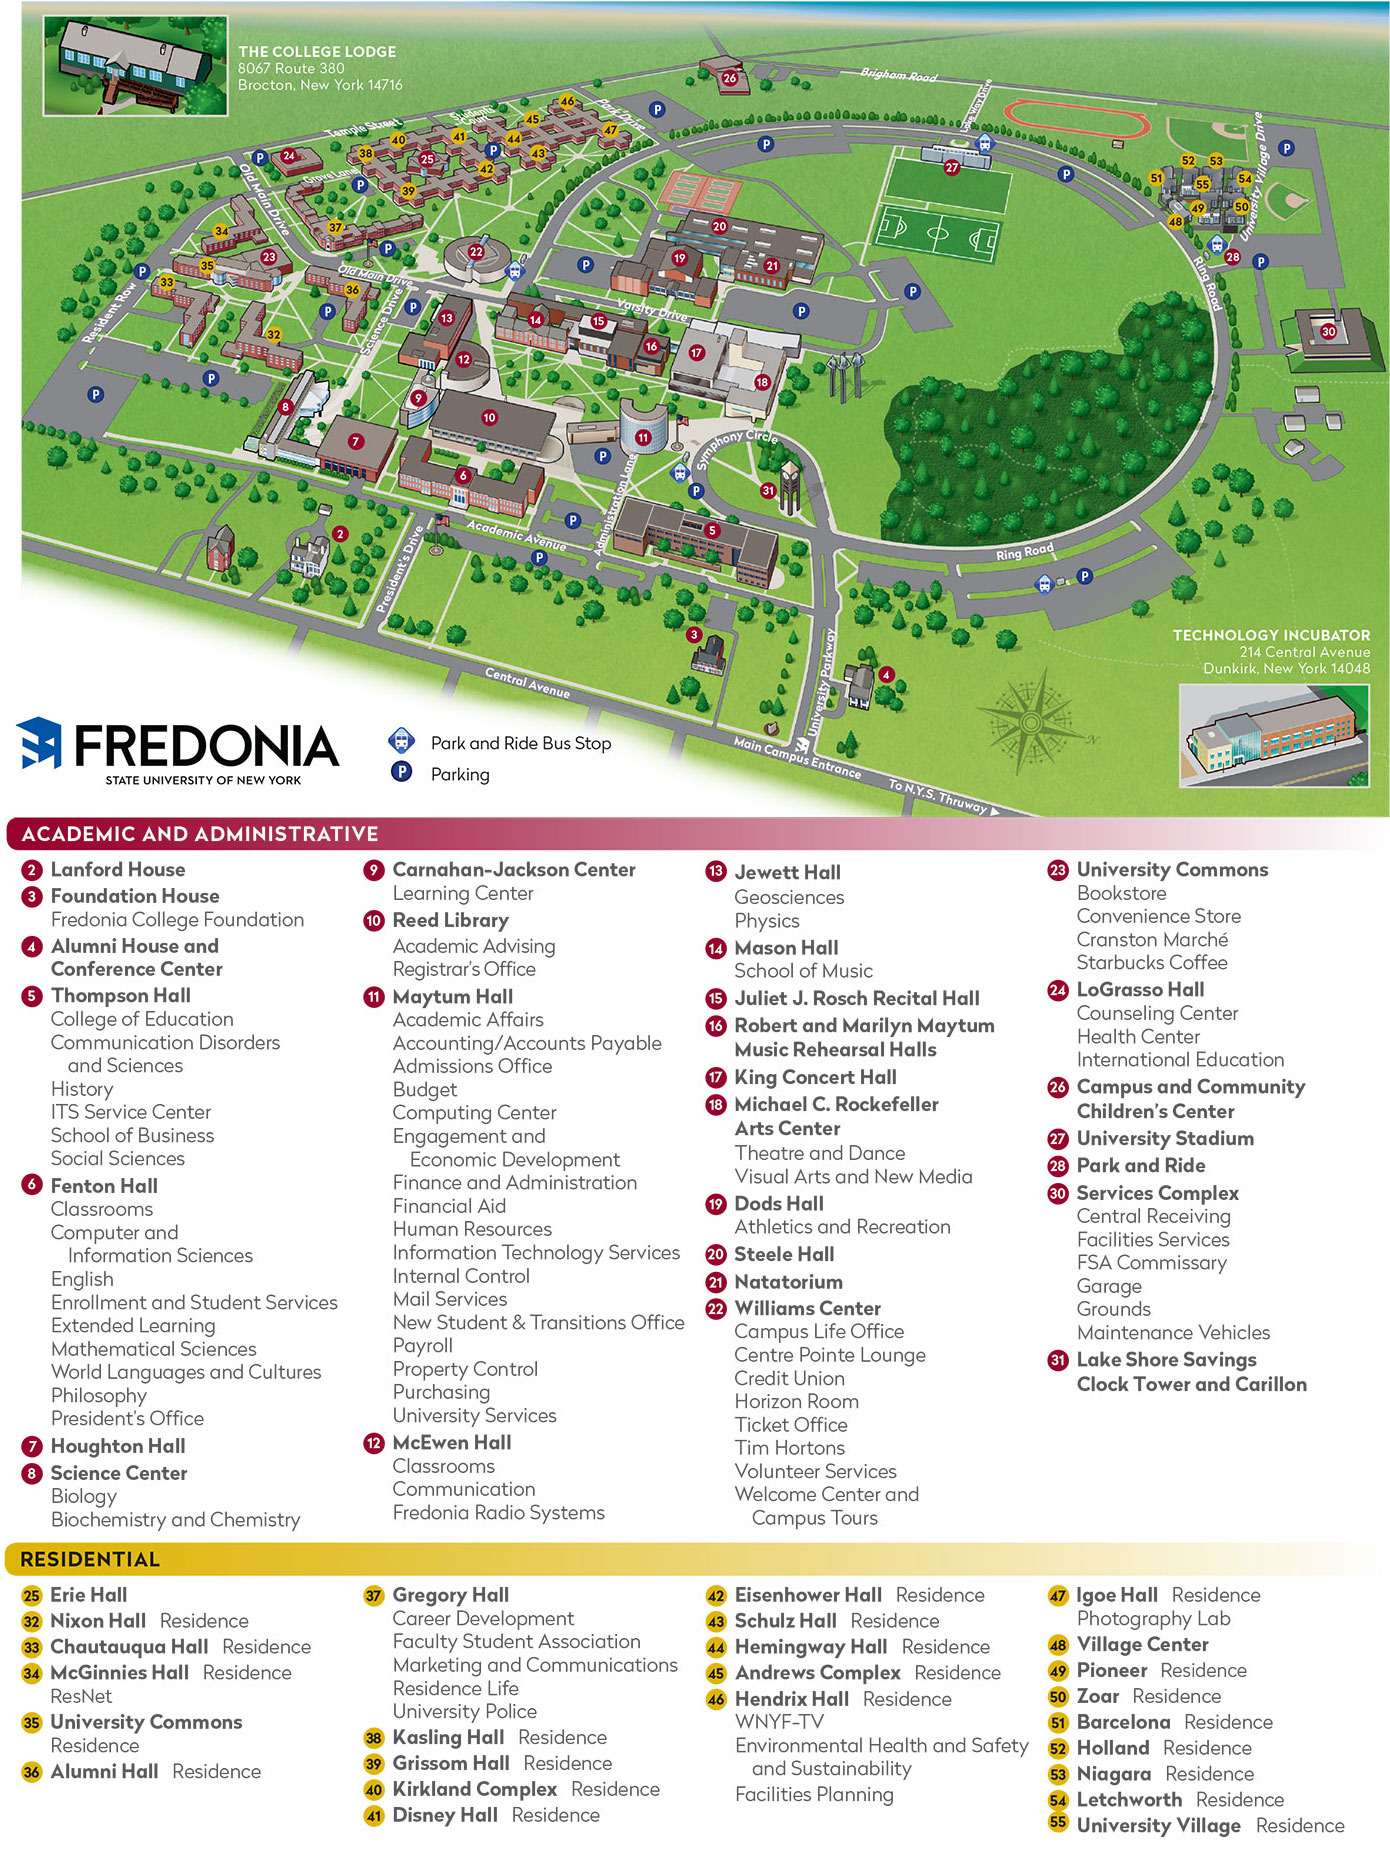 Campus map of State University of New York at Fredonia